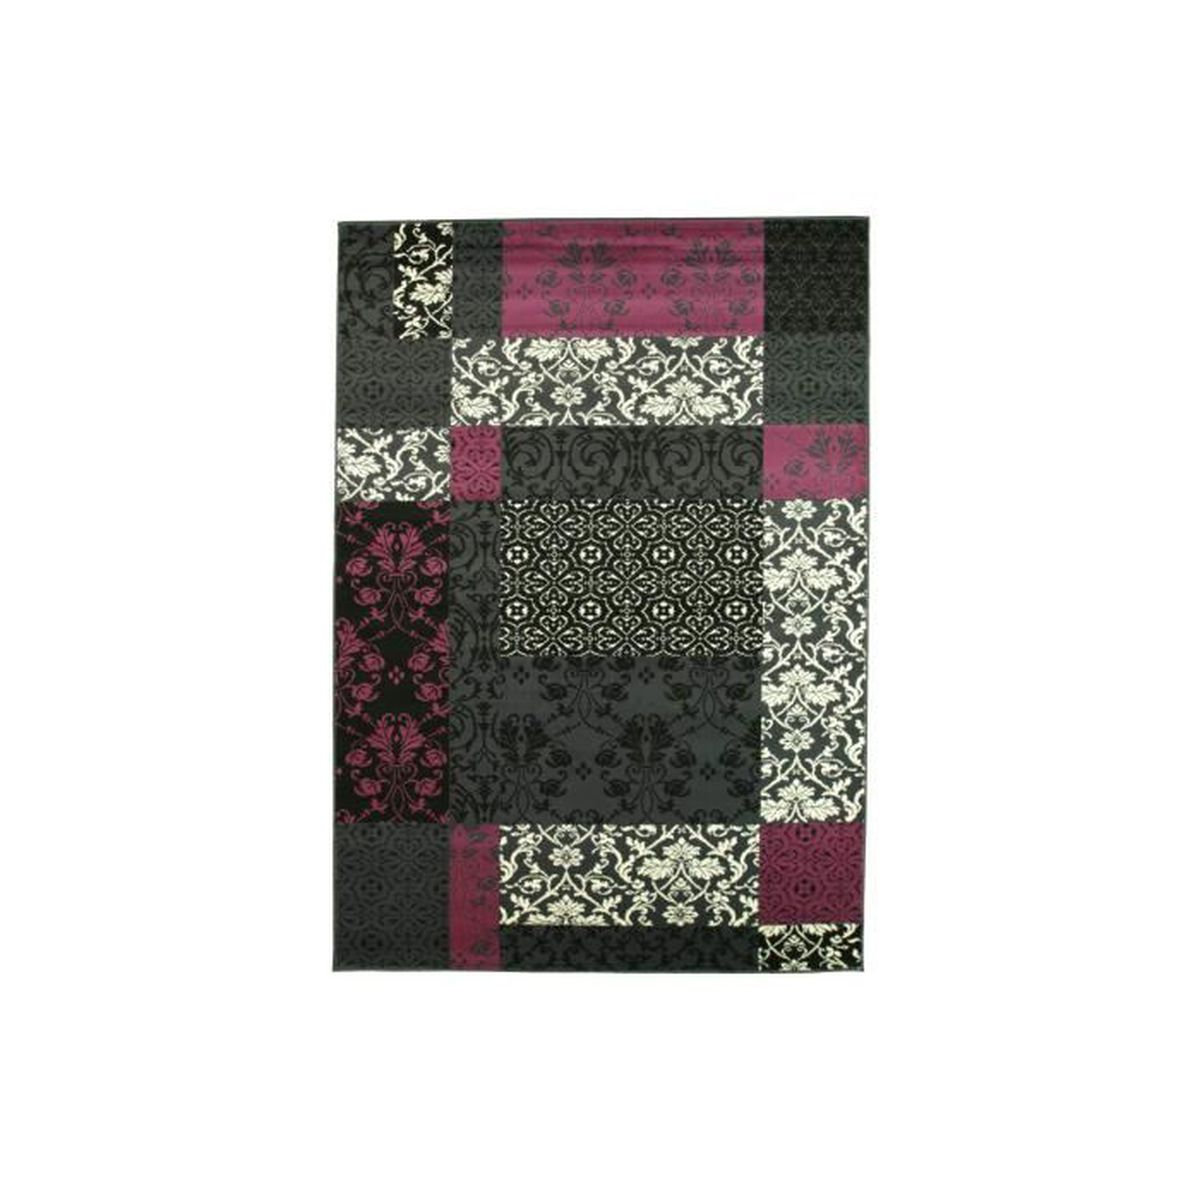 tapis salon baroque noir violet debonsol achat vente tapis cdiscount. Black Bedroom Furniture Sets. Home Design Ideas